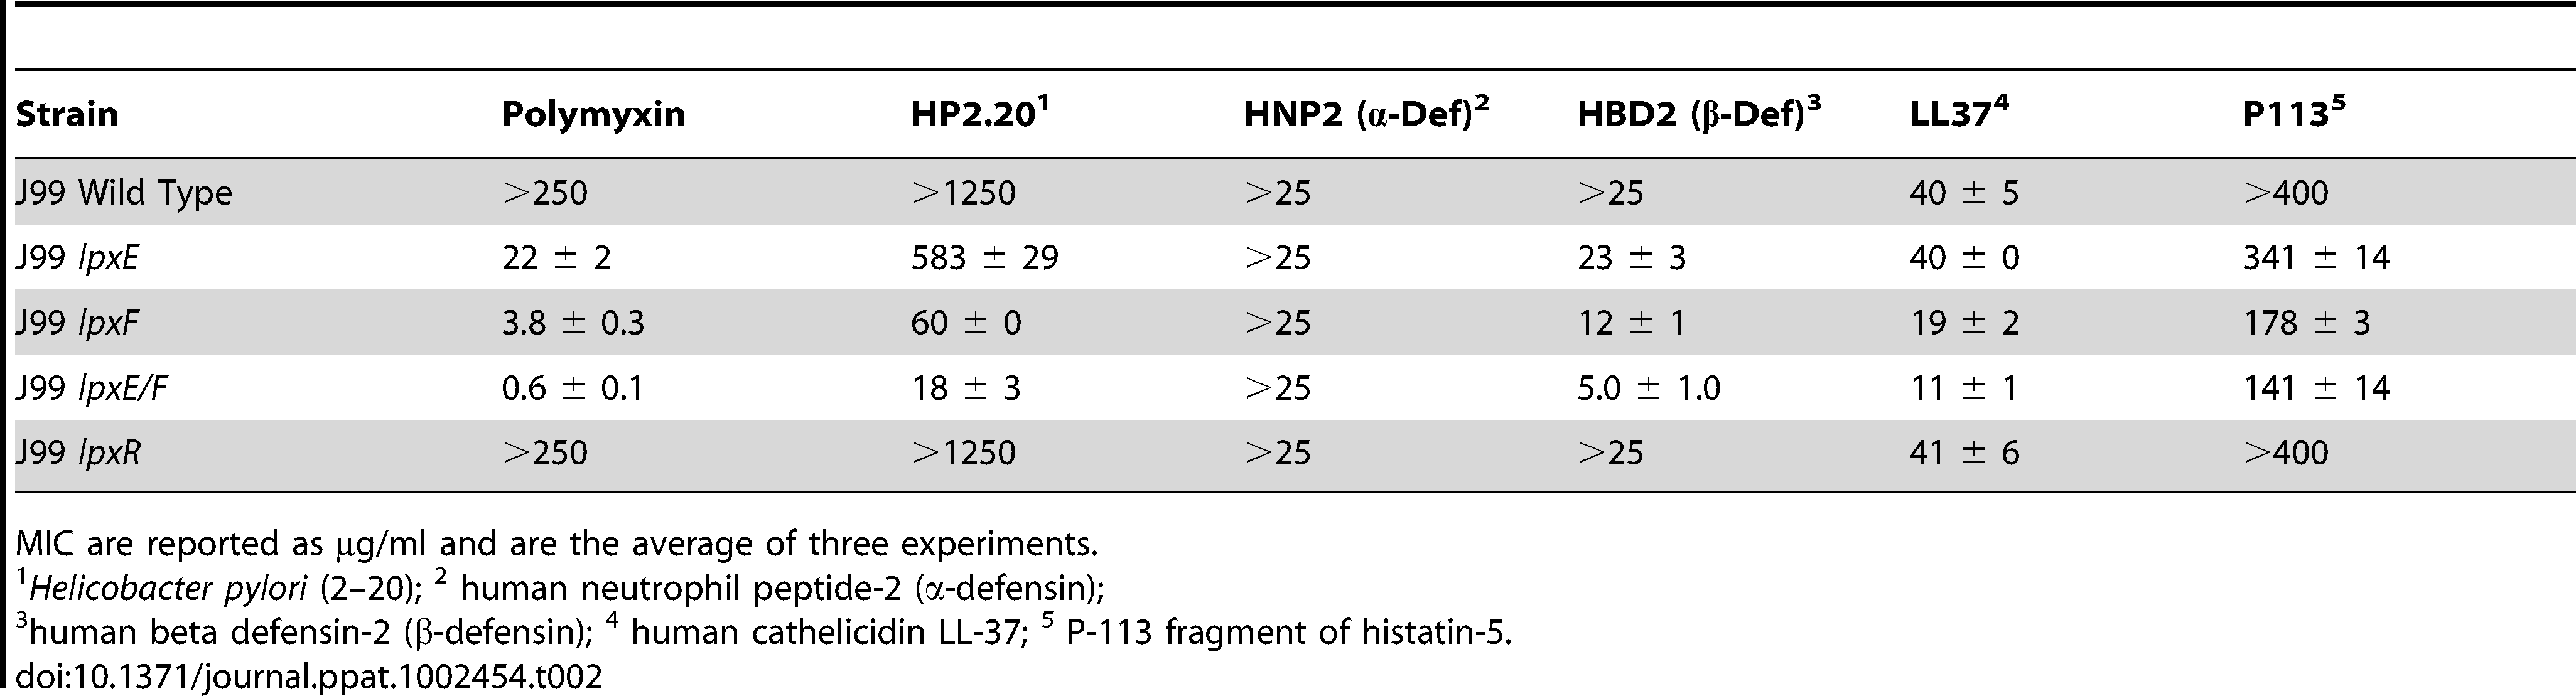 Minimal Inhibitory Concentrations (MIC) of cationic antimicrobial peptides against <i>H. pylori</i> strains.